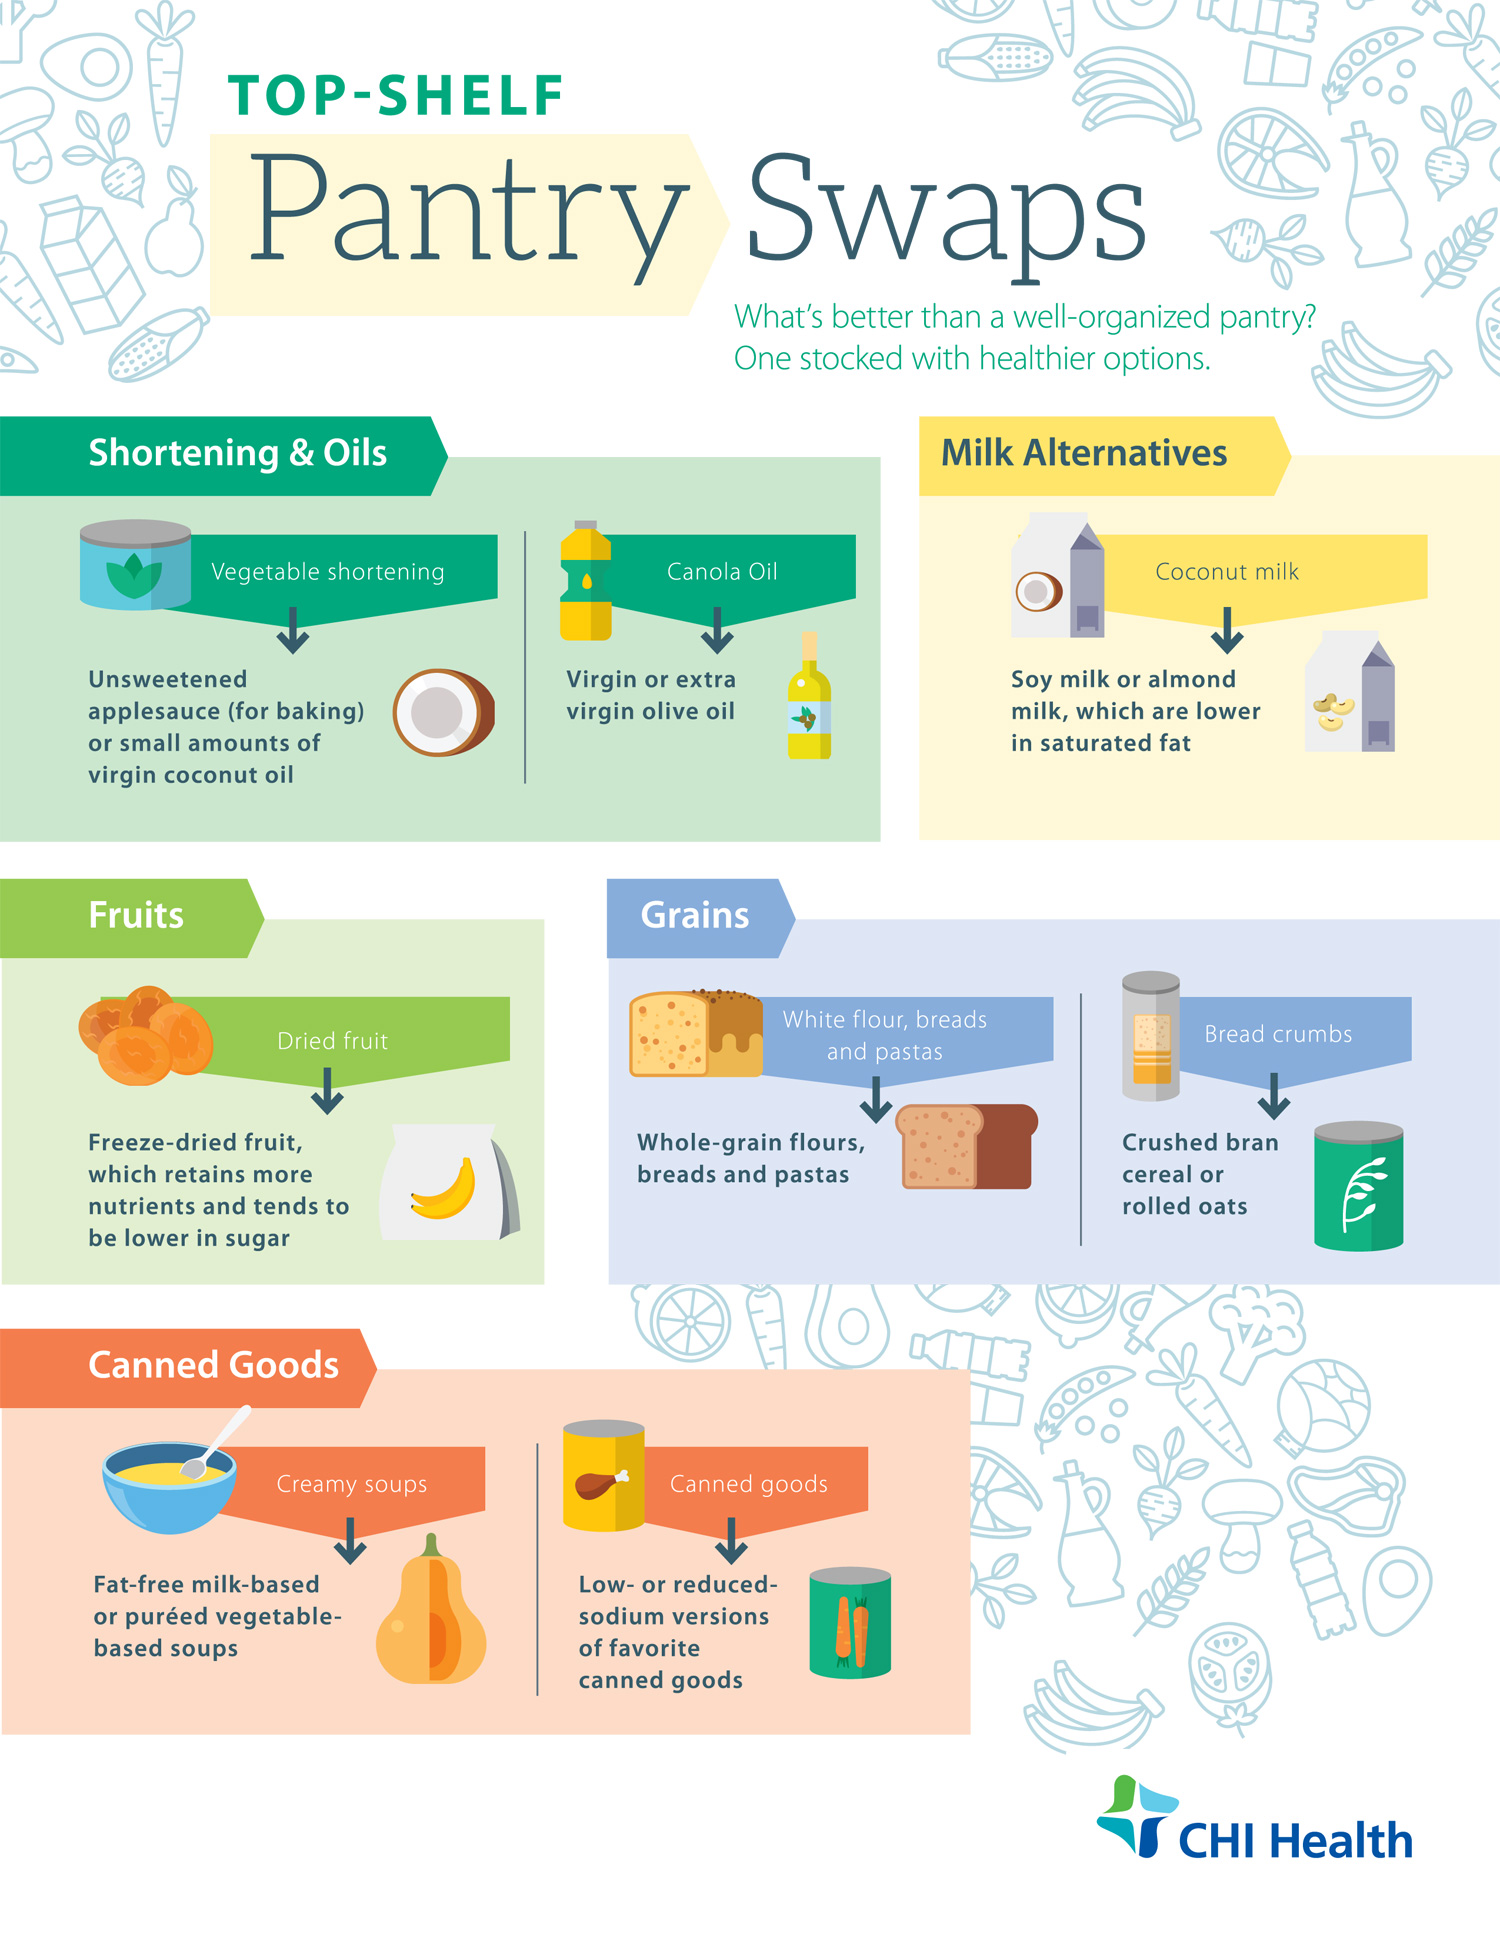 Top-Shelf Pantry Swaps